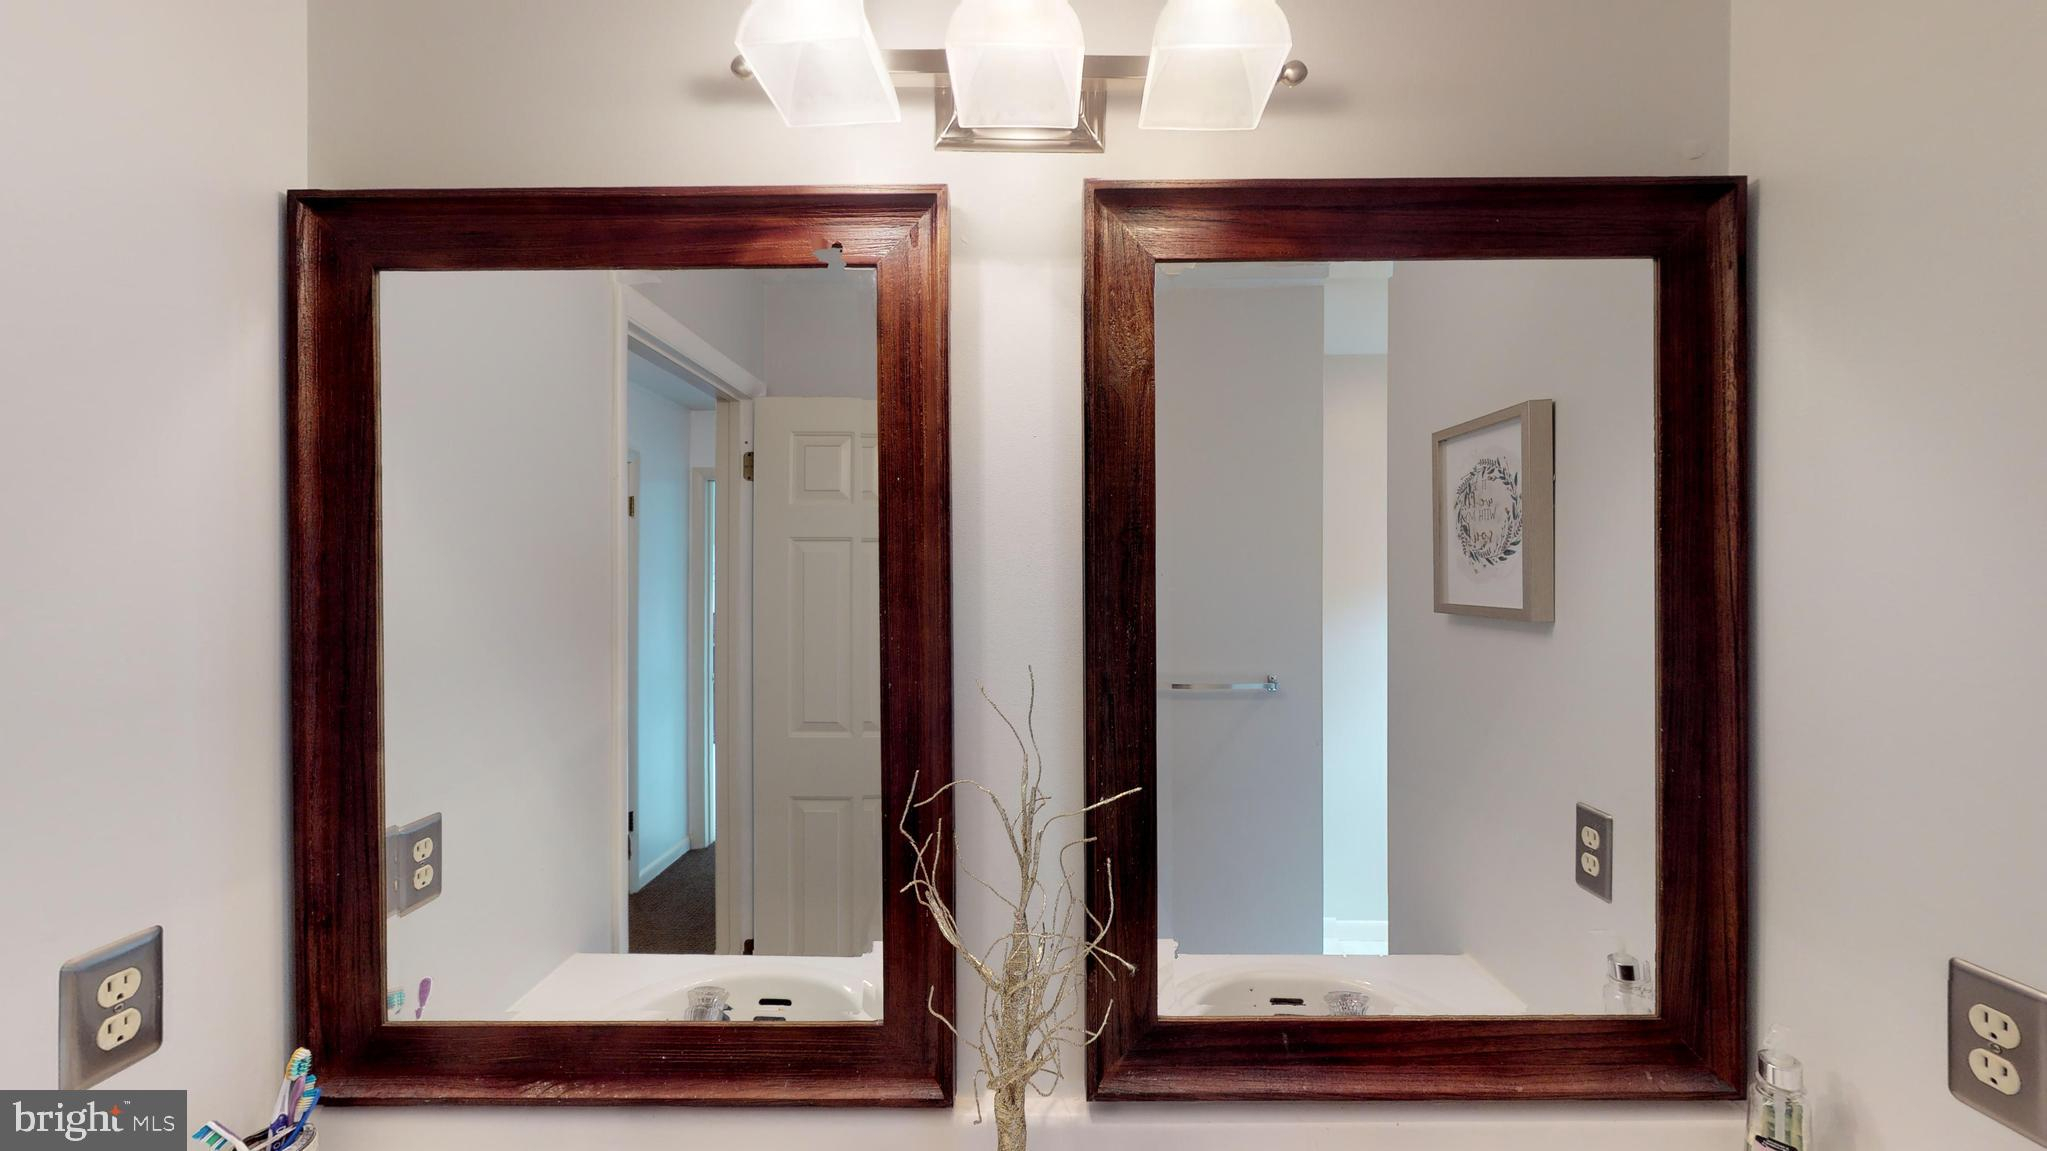 593 Penn Street, Pennsburg, Pa 18073 | Kevin Snyder Sales Team with regard to Pennsburg Rectangle Wall Mirror (Image 1 of 30)